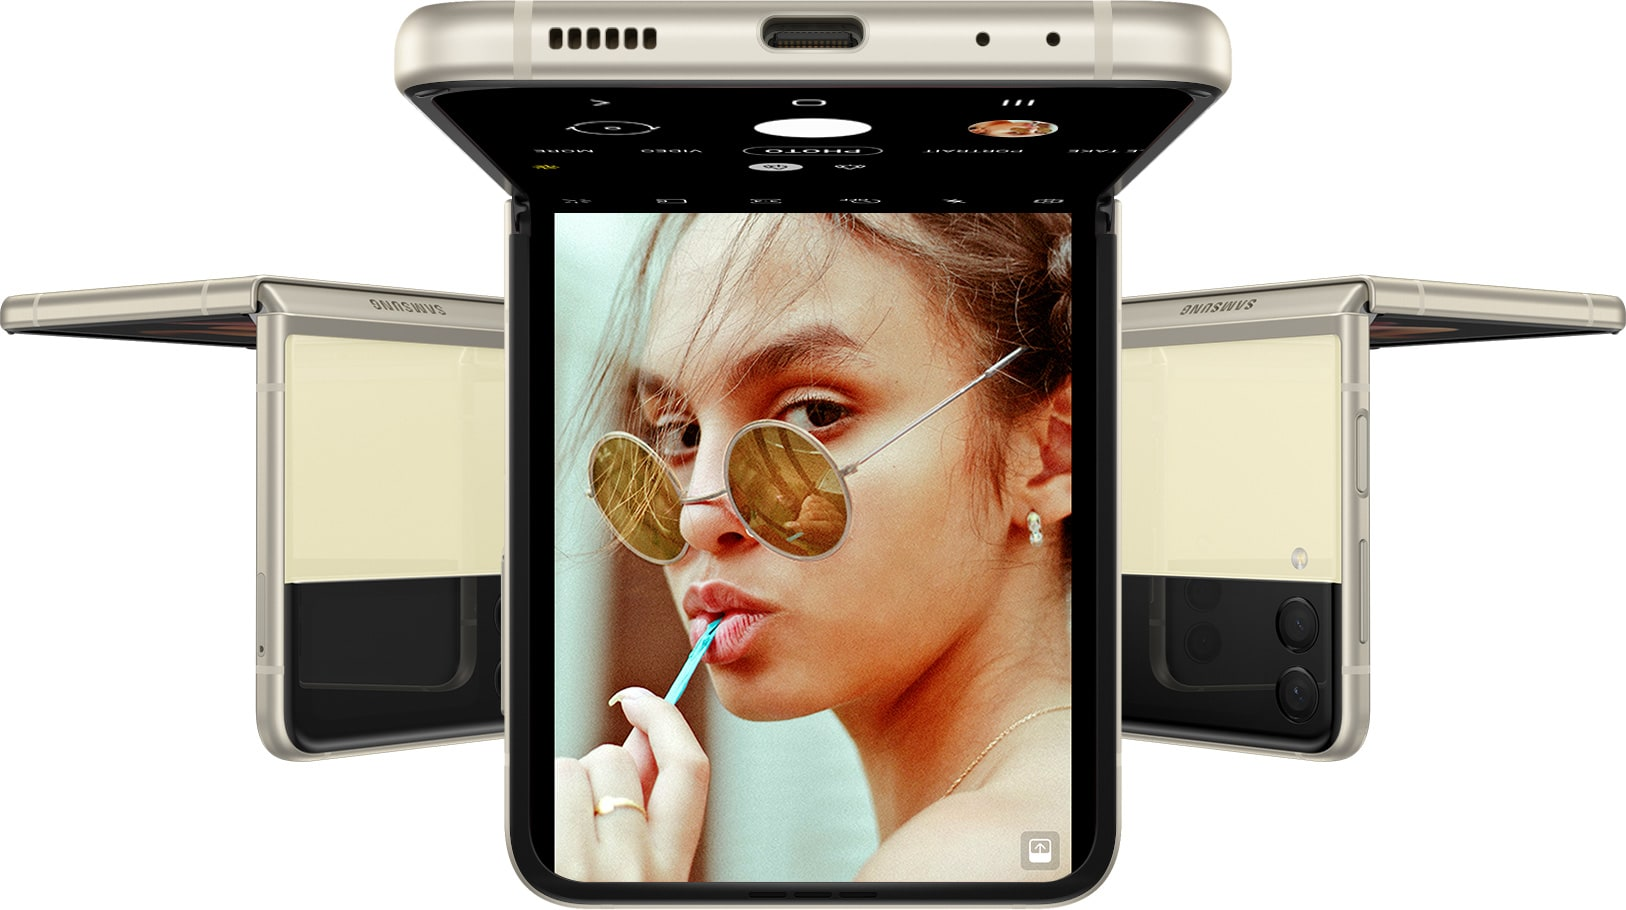 Three Galaxy Z Flip3 5G phones, all in Flex mode and upside down. The phone facing forward has the Camera app on the Main Screen, and a woman is staring into the camera.